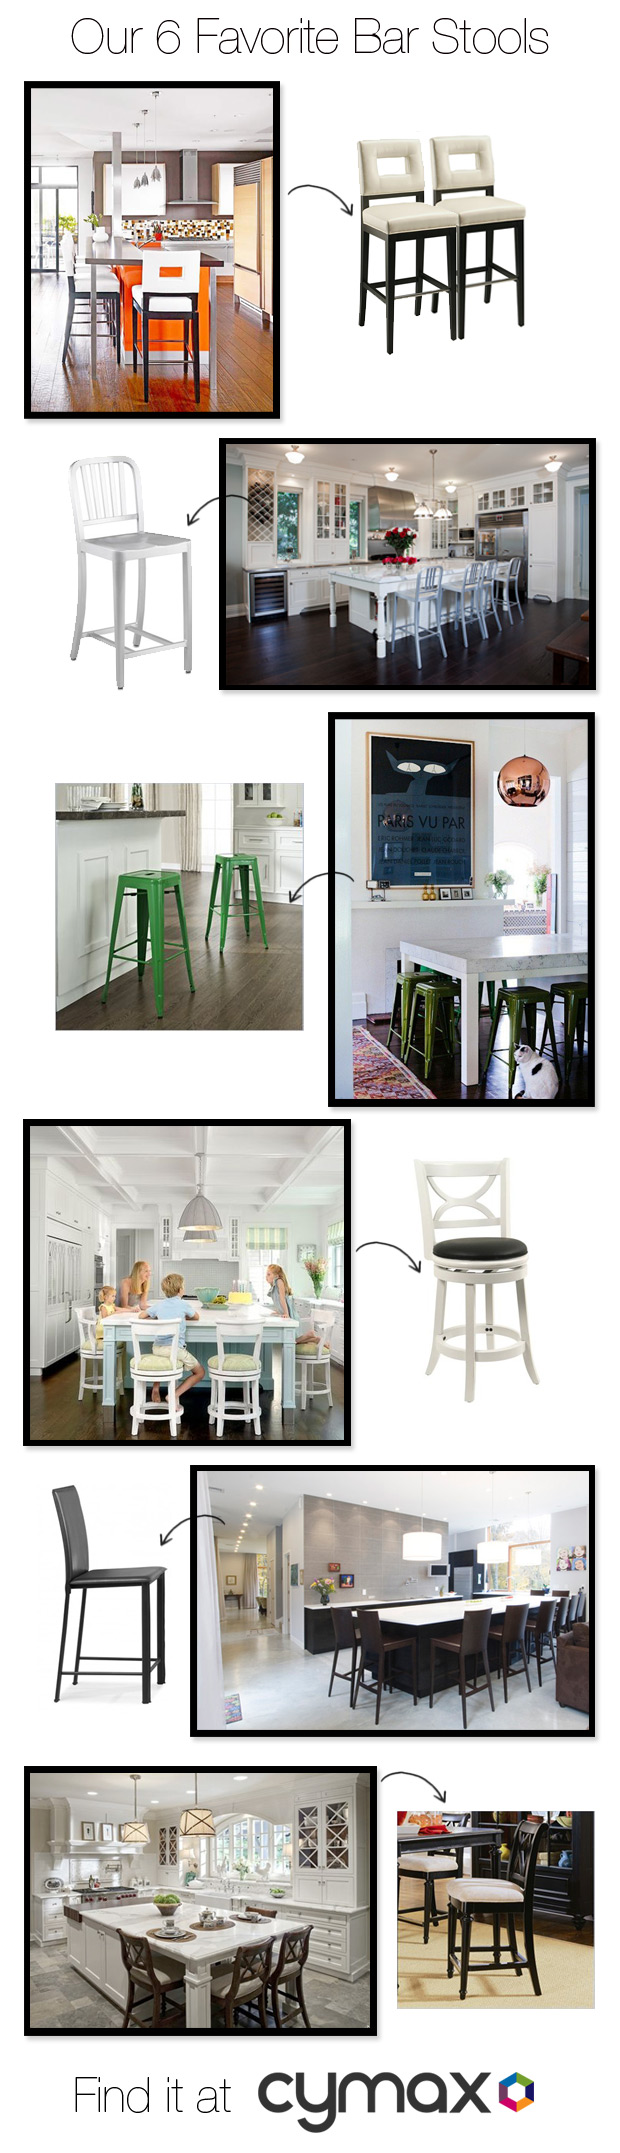 the 6 Favorite cymax bar stools for home furniture ideas